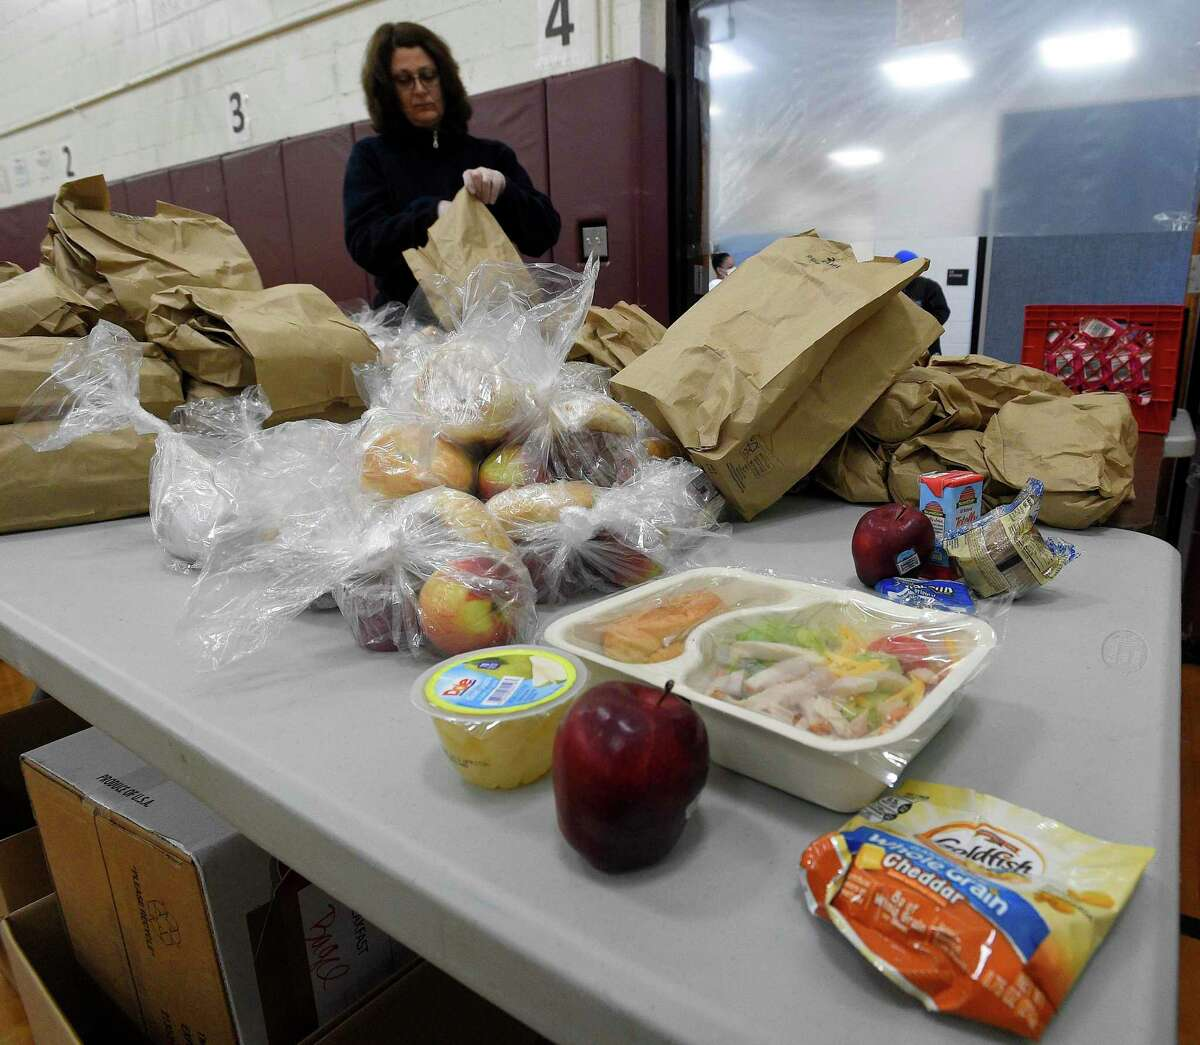 Volunteer Connie Begetis of Stamford bags up meals that are being distributed to families on Friday, April 17, 2020 in Stamford, Connecticut. The Grab and Go Meals plan that Stamford Schools is providing to families, ensures no child goes hungry while schools are closed. Over 500 volunteers have partnered with the City of Stamford's citywide Stamford Together program to help support emergency response efforts related to the COVID-19 public health emergency. Volunteers step up to help in food distribution, testing site check in's and other areas throughout the city and Fairfield County.